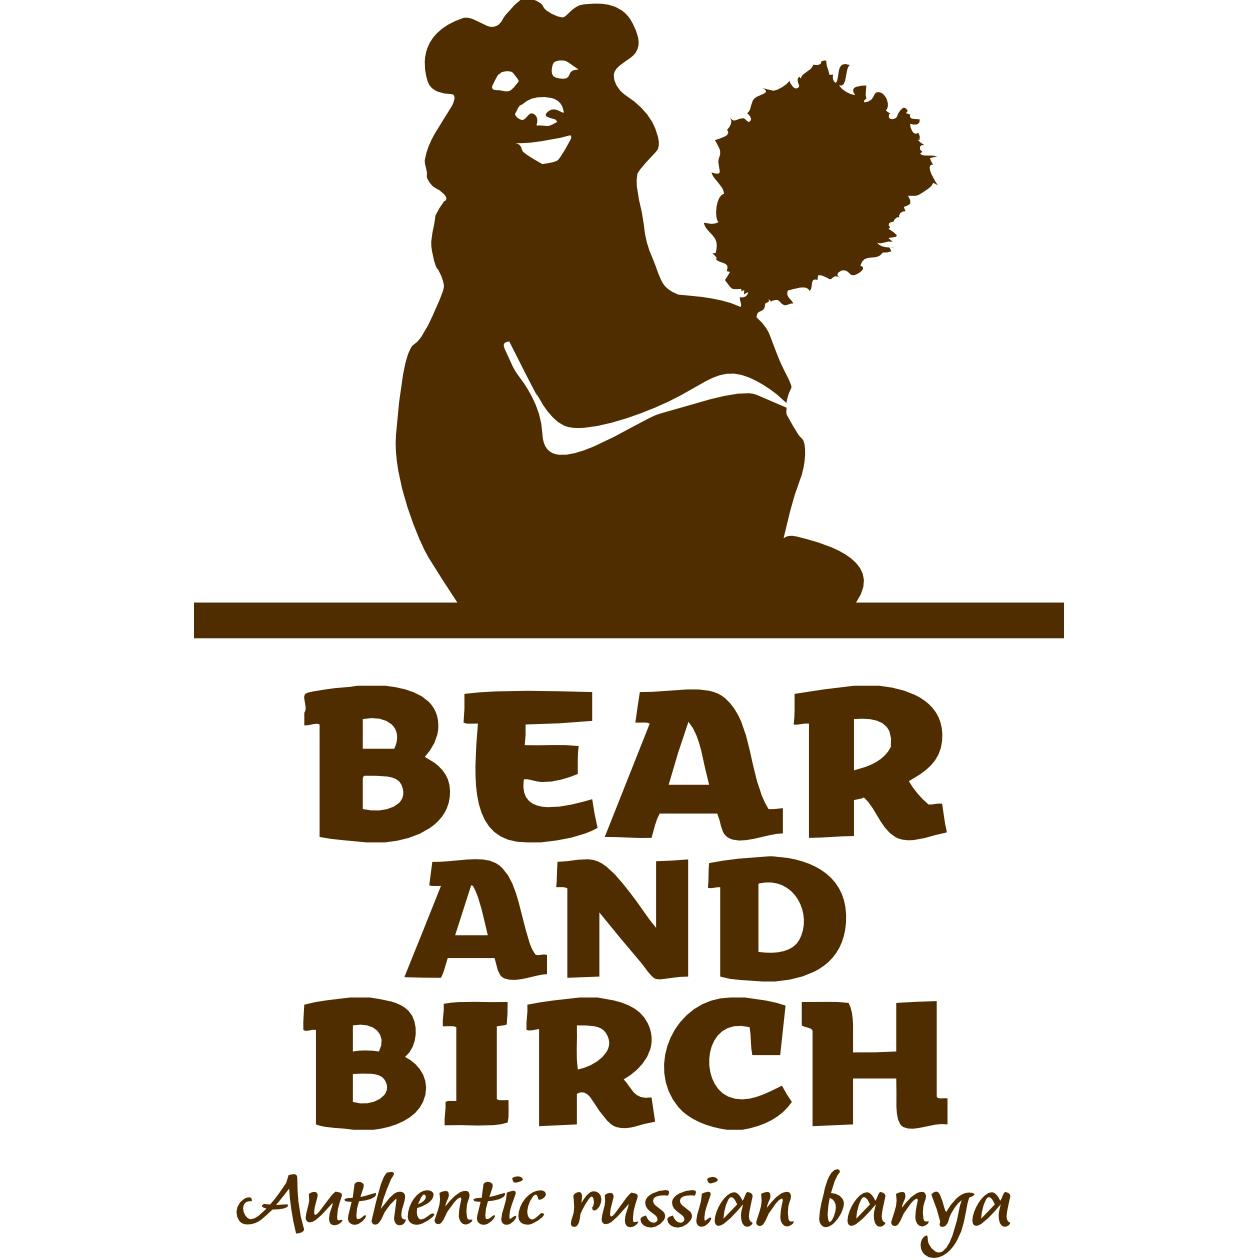 Photos in use by Bear and Birch